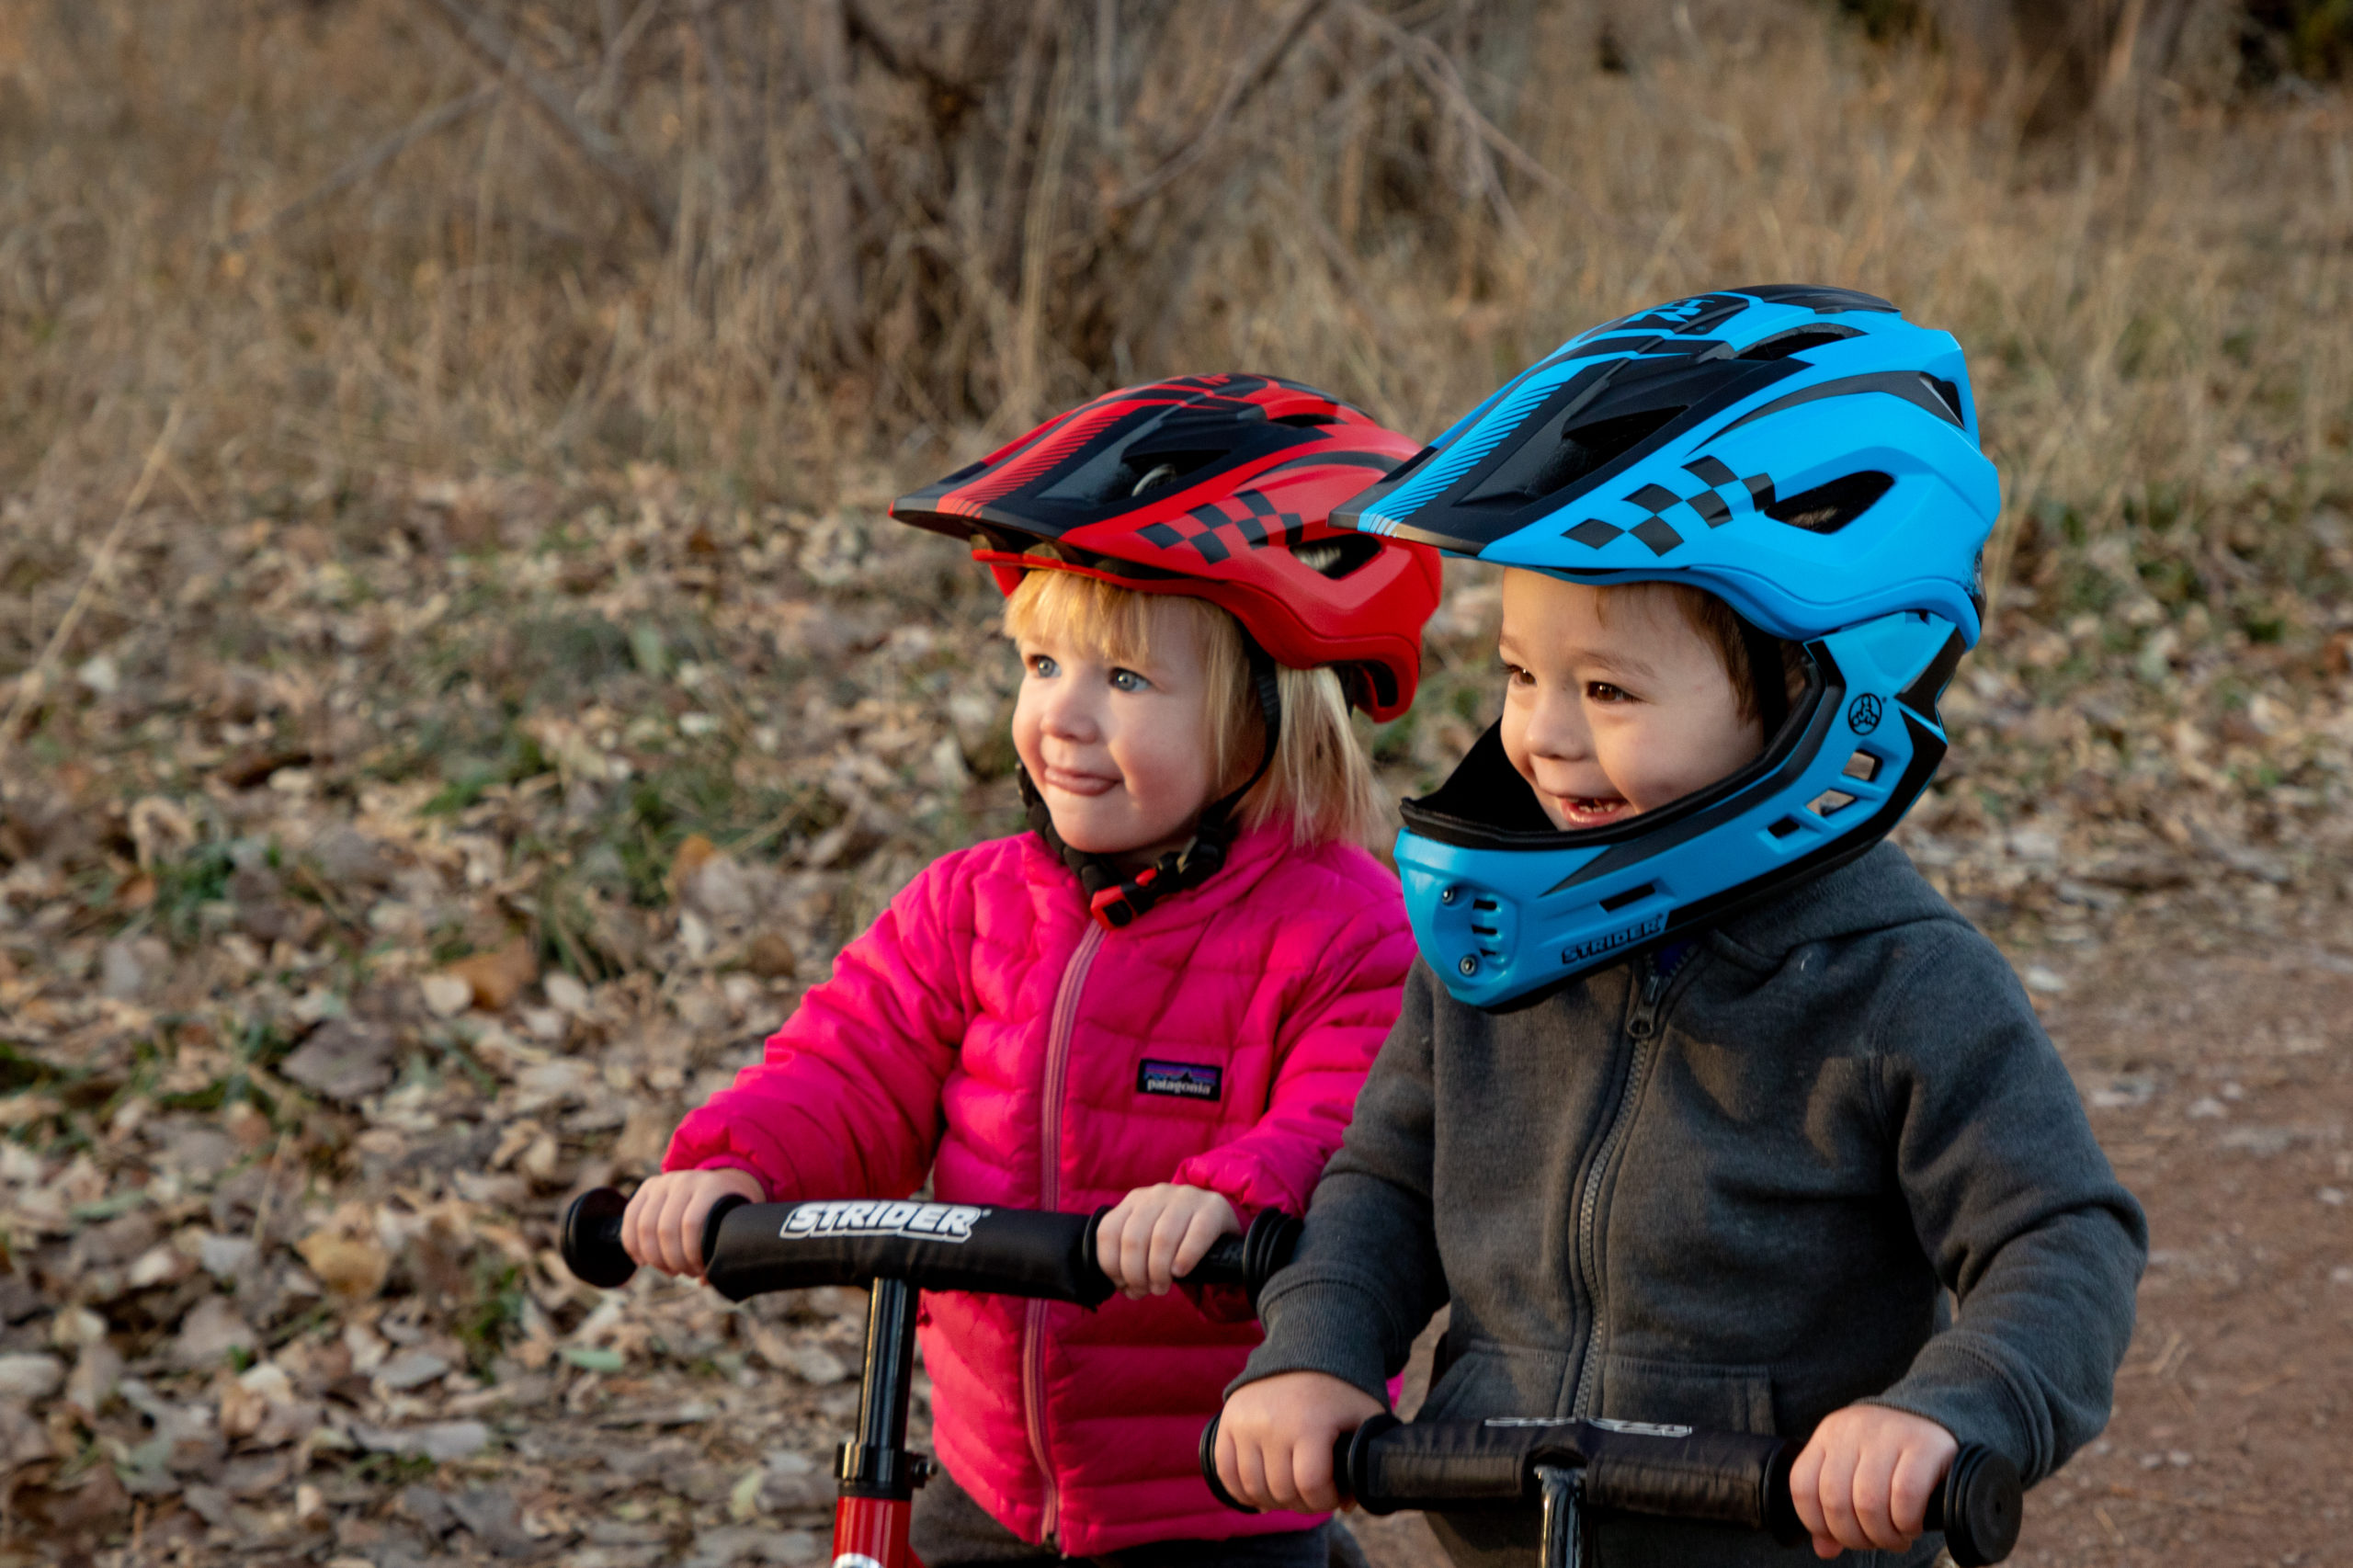 Smiling kids wearing blue ST-R Full-Faced helmet and Red ST-R Helmet without face mask